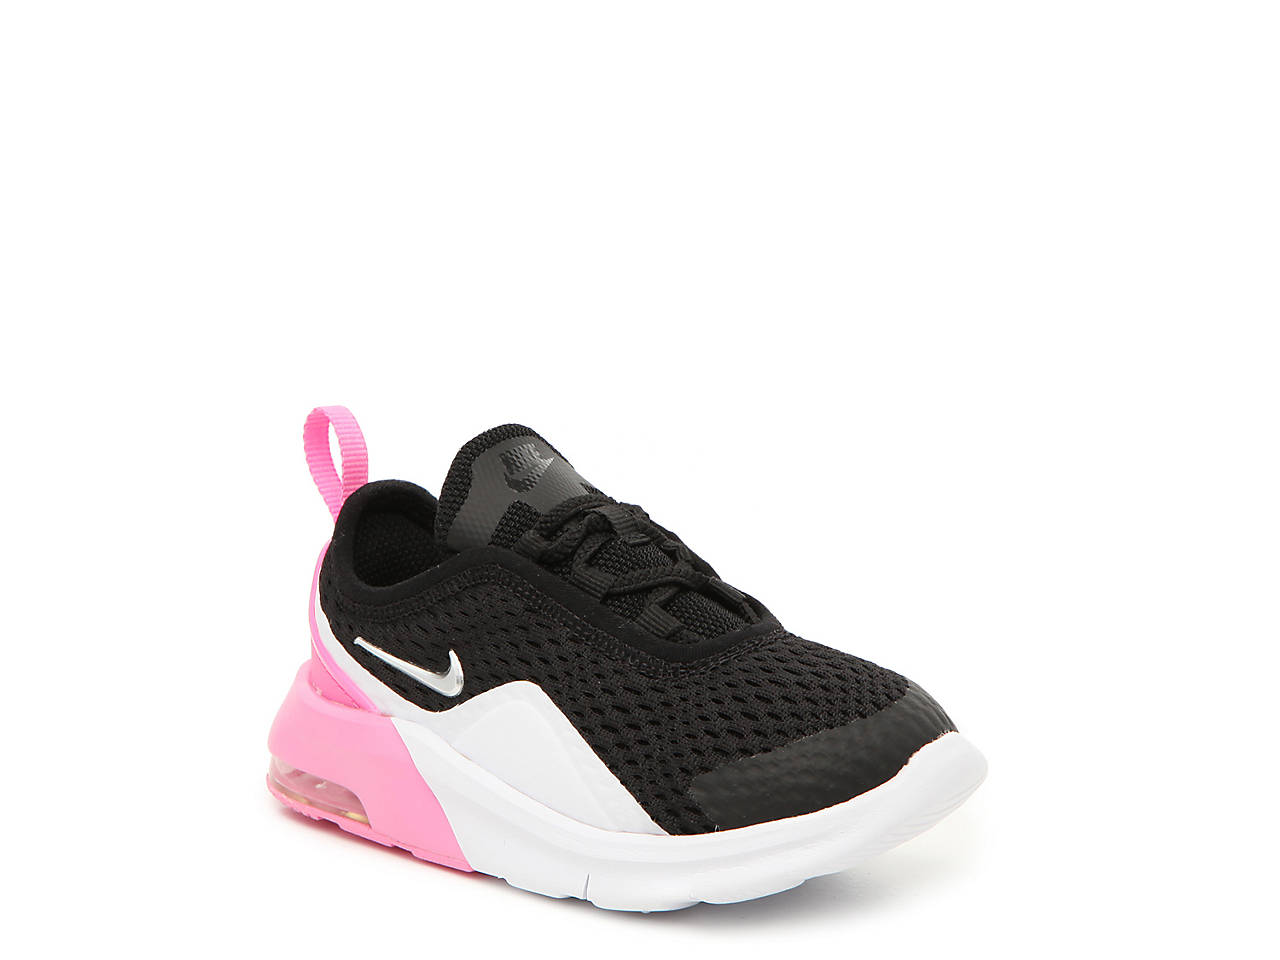 d8102d7b7f1 Nike Air Max Motion 2 Toddler Sneaker Kids Shoes | DSW